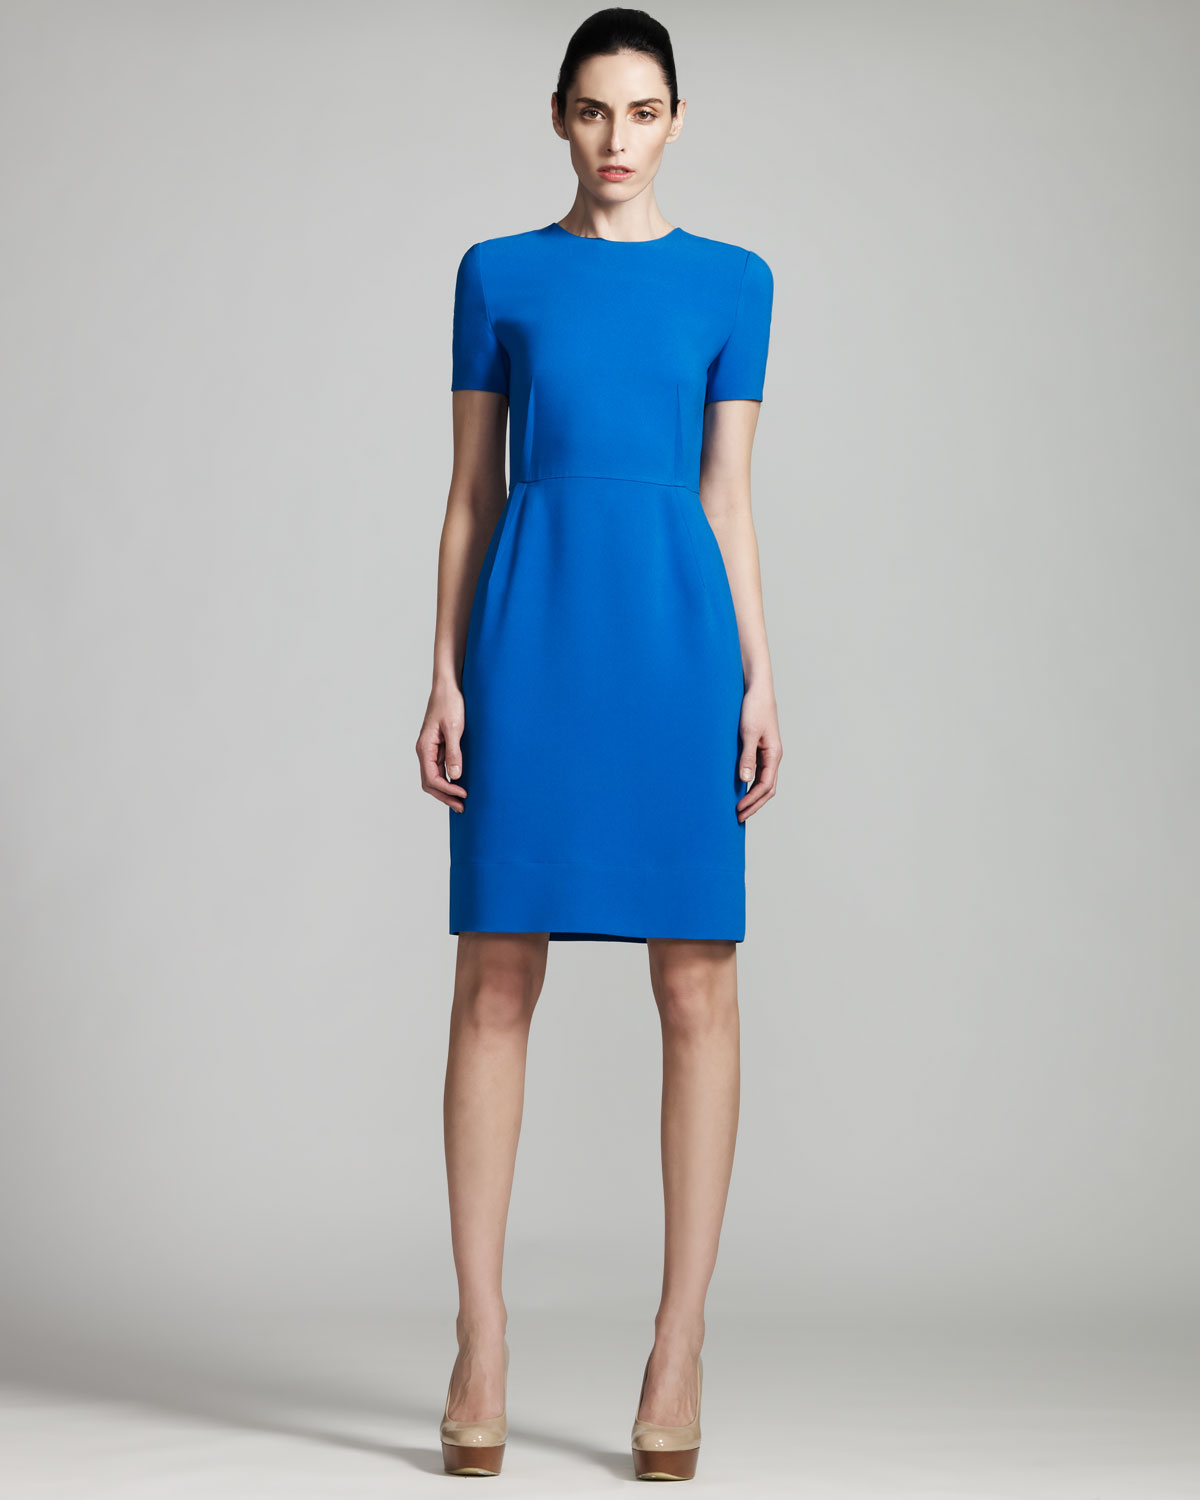 Stella mccartney Short Sleeve Dress in Blue - Lyst